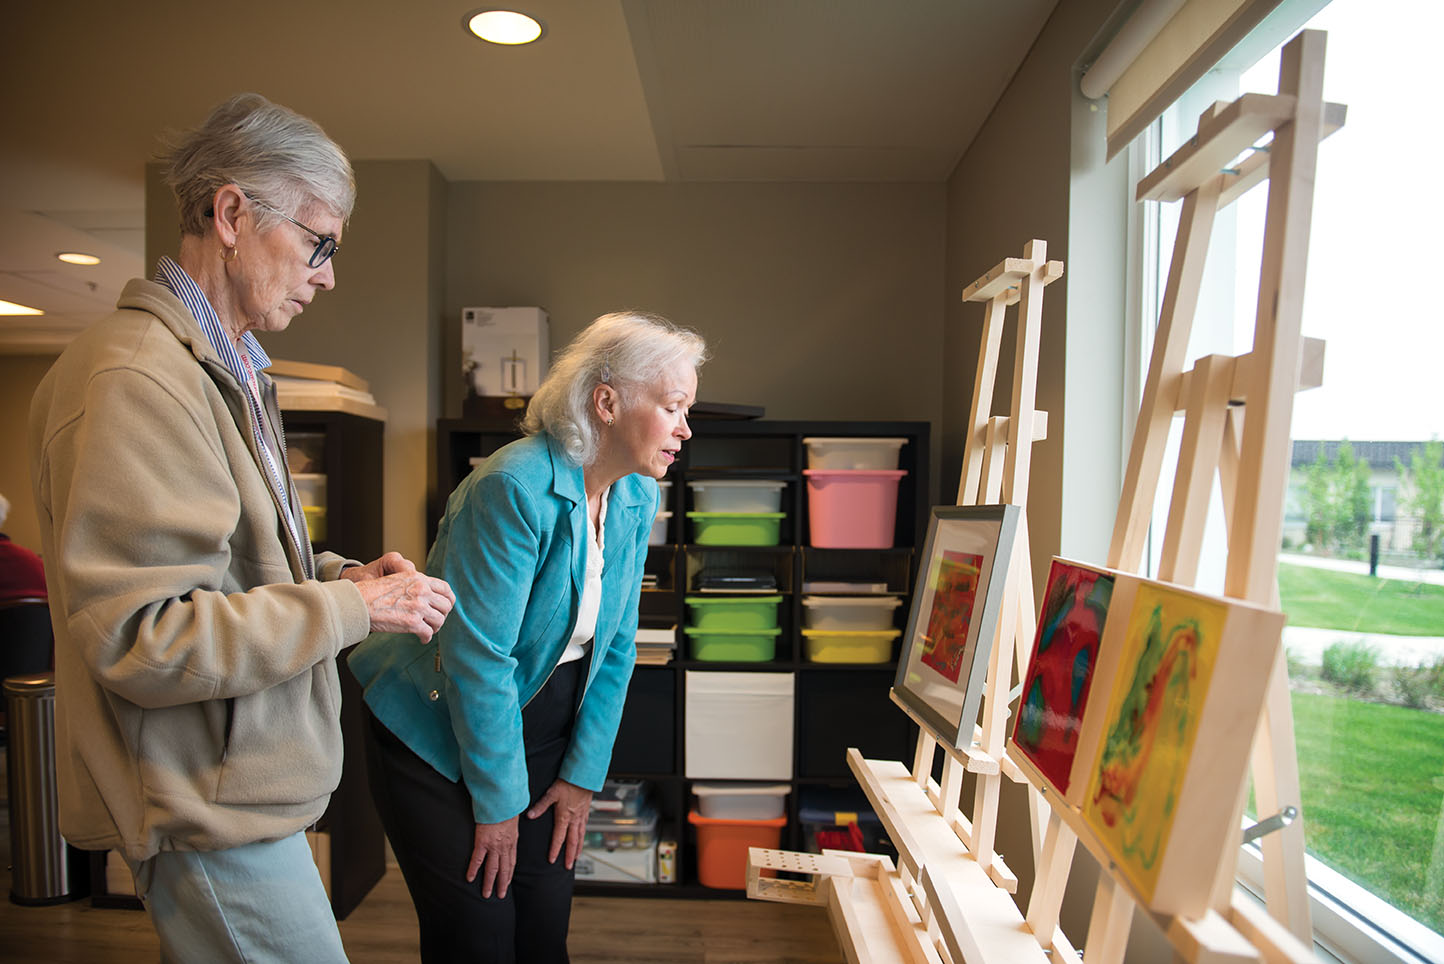 OMA participant Cathy Sherwood, left, and her sister Barb Schultz discuss the art on display at Club 36.